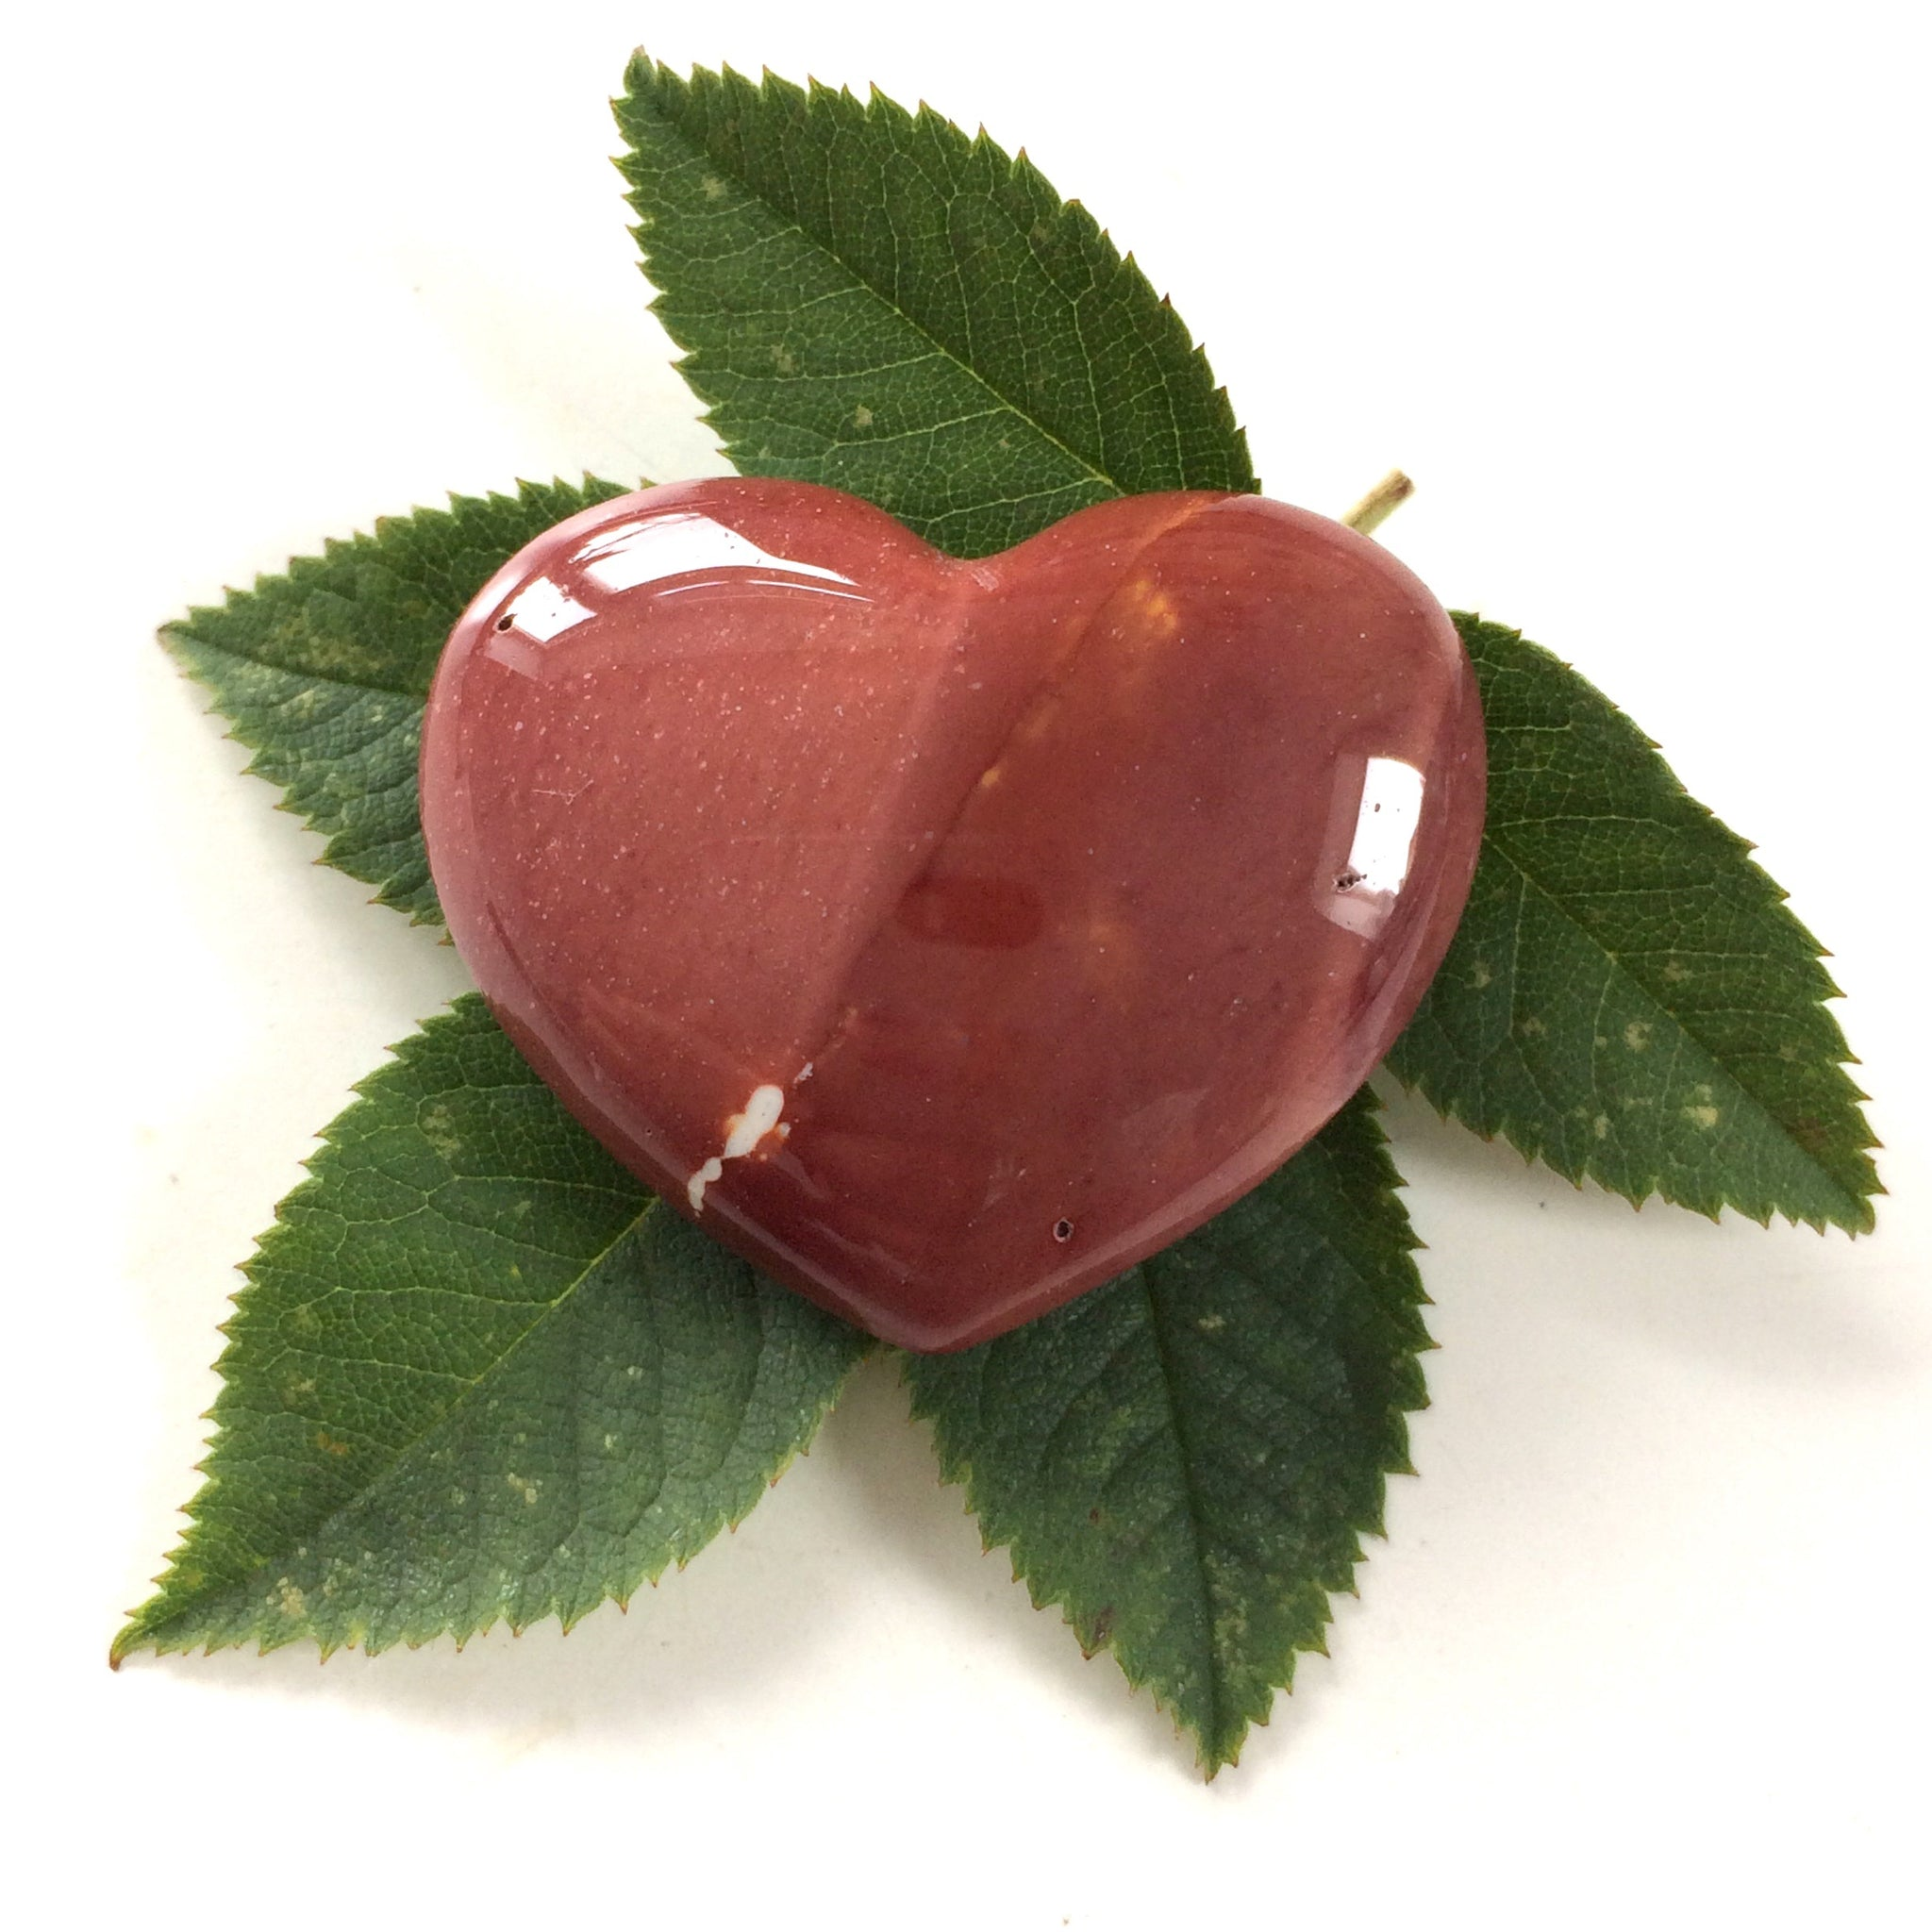 Red mookaite heart shaped smooth palm stone pocket healing 30mm